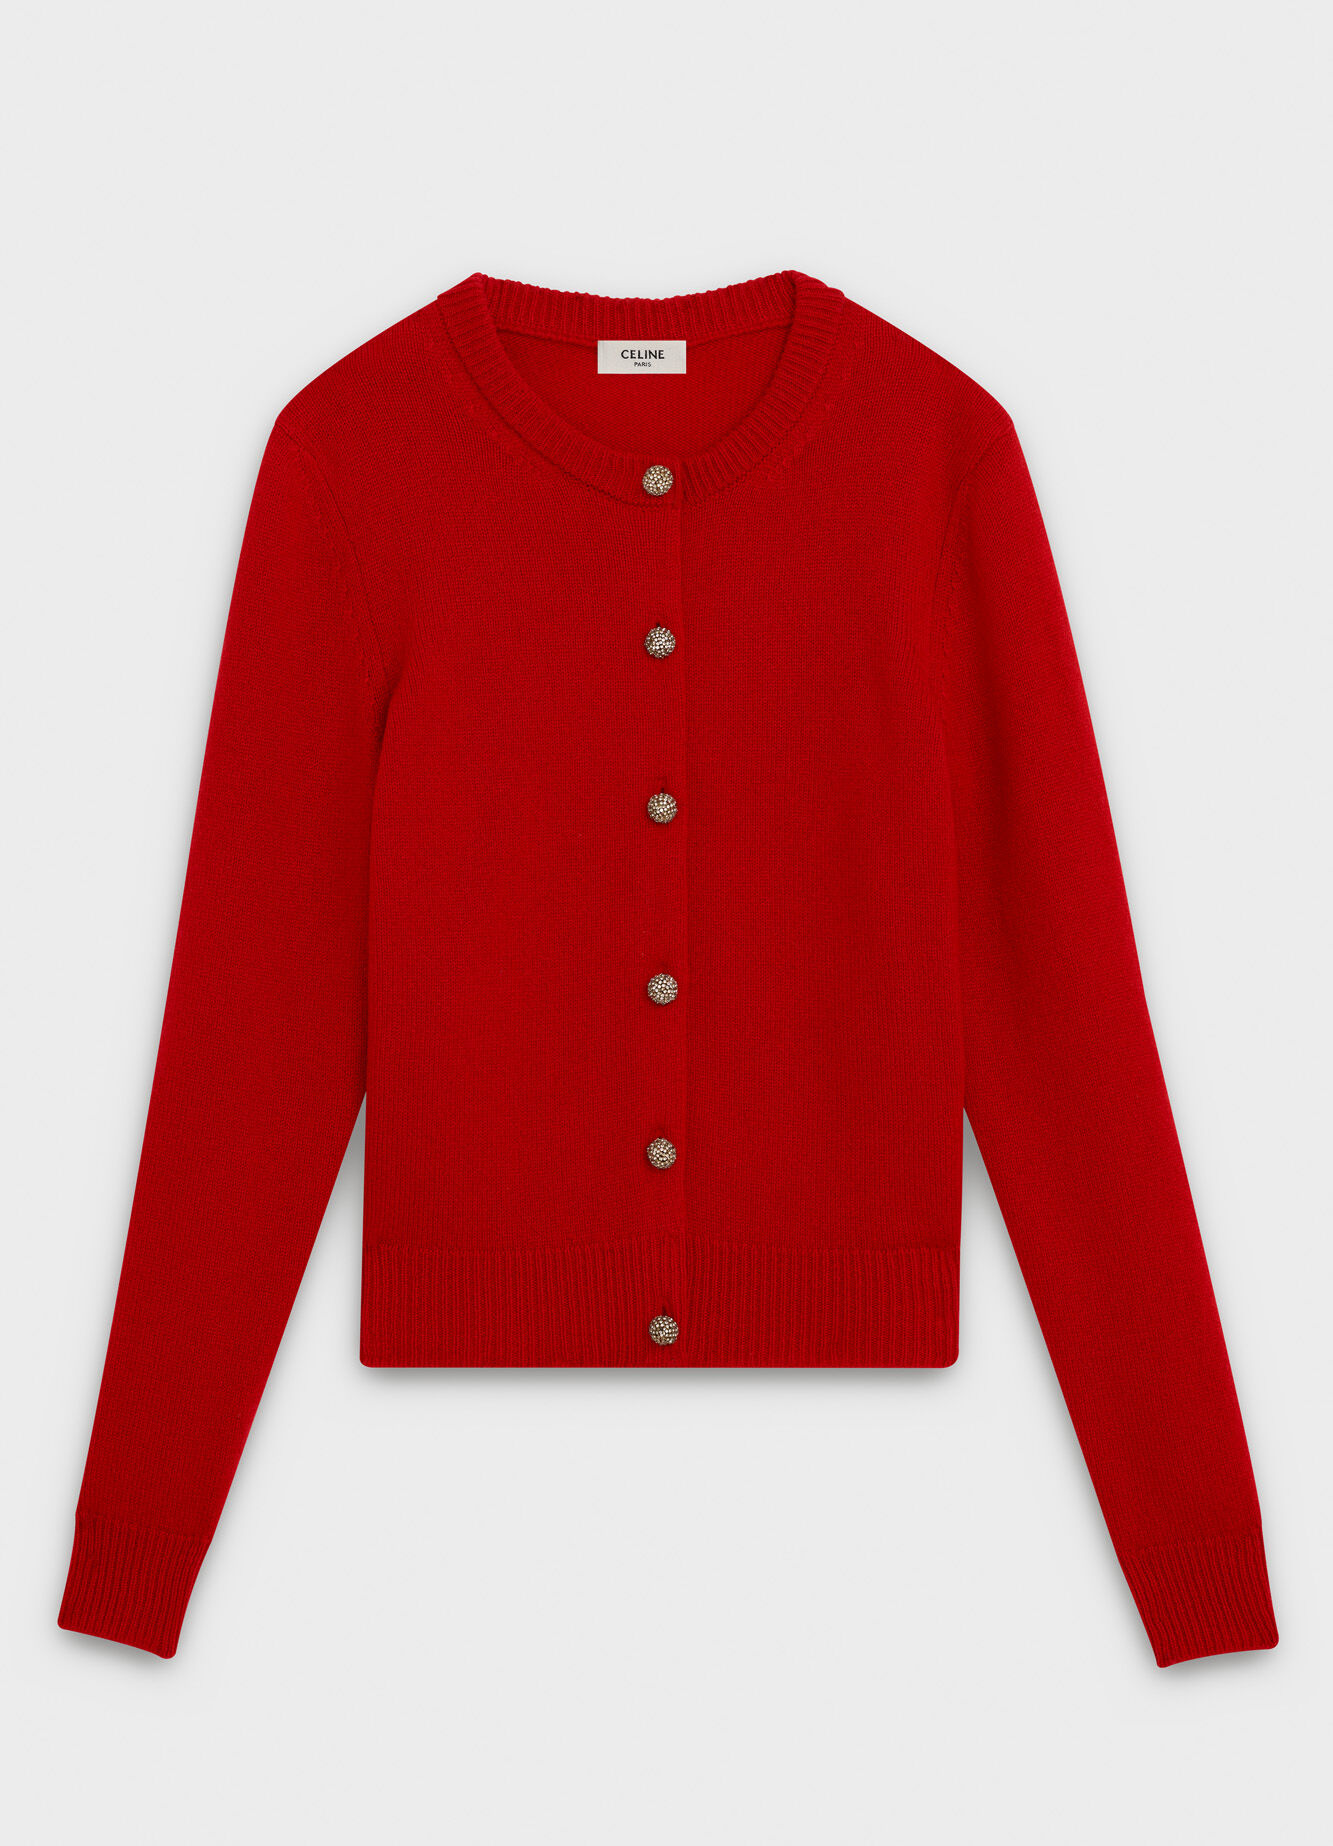 CELINE CREW NECK CARDIGAN IN CASHMERE